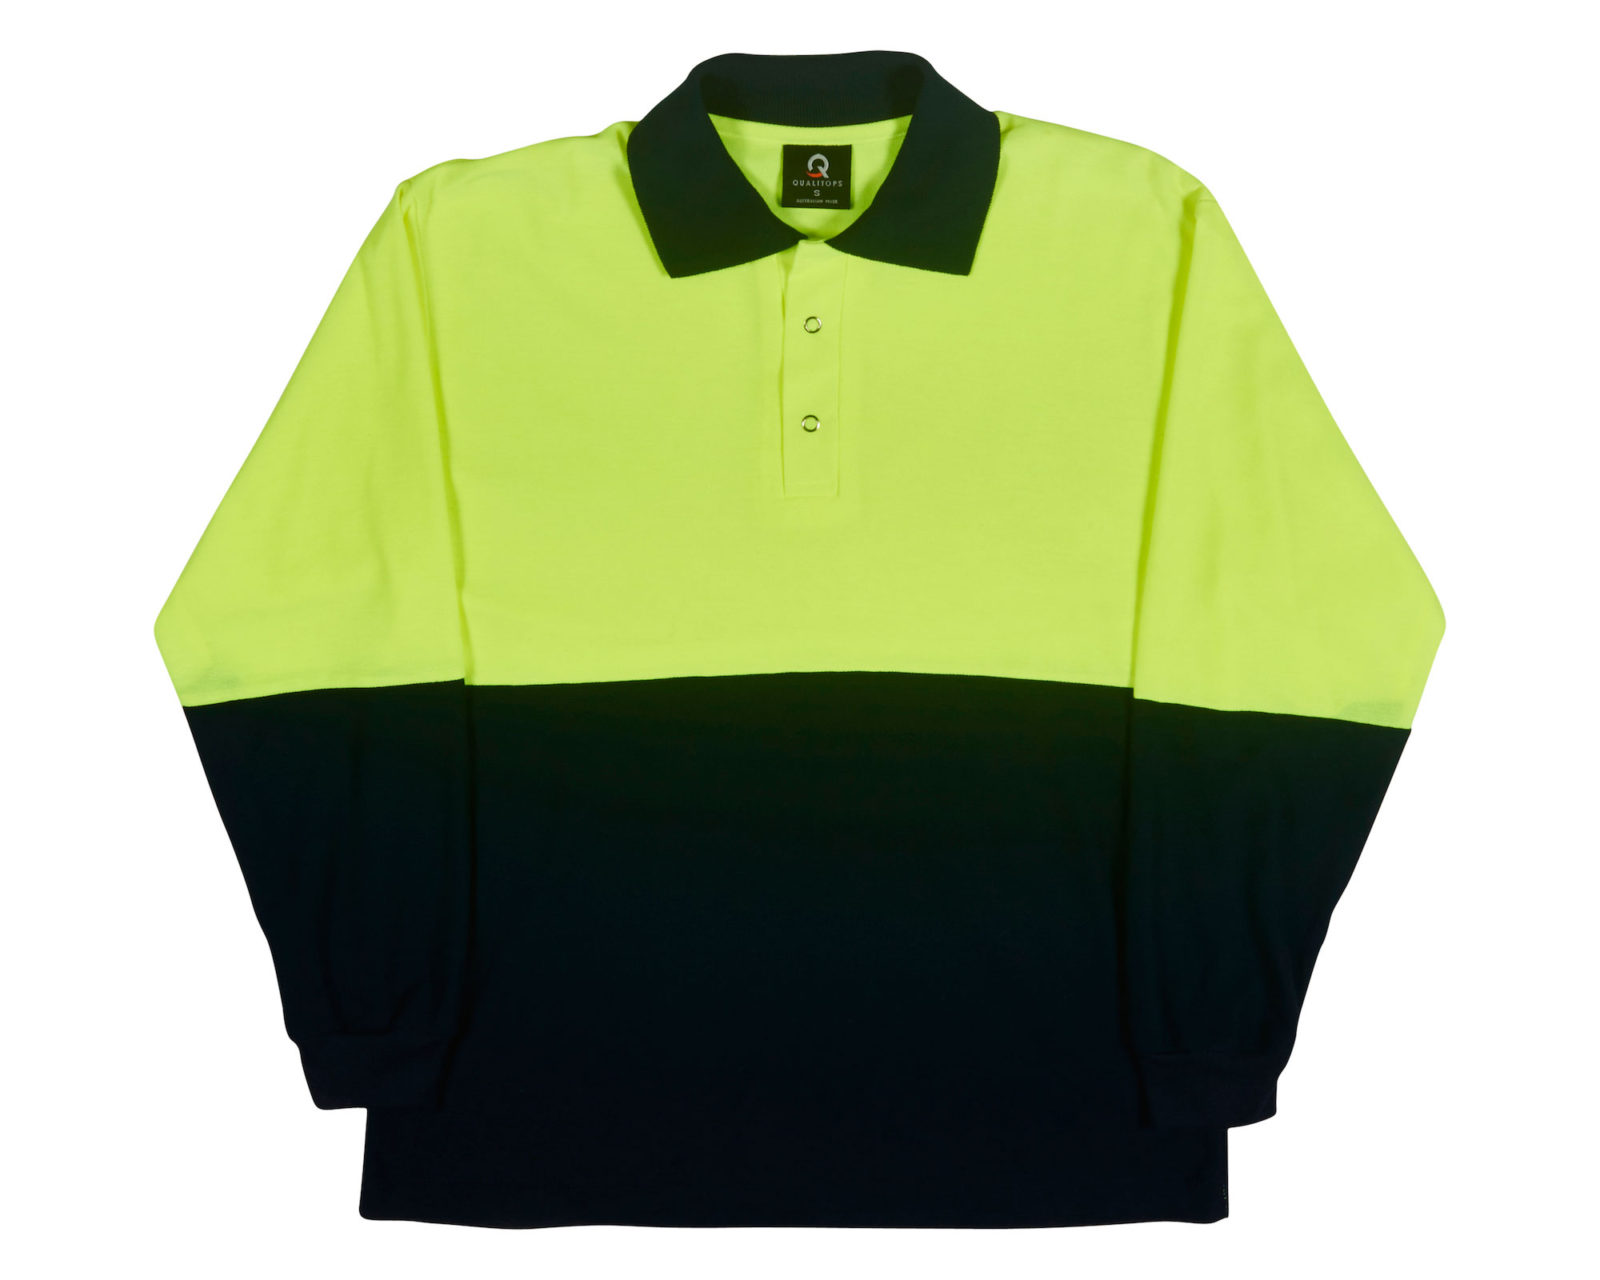 Qualitops Mens Long Sleeve Hi Vis Two Tone Polo Polycotton Australian made clothing